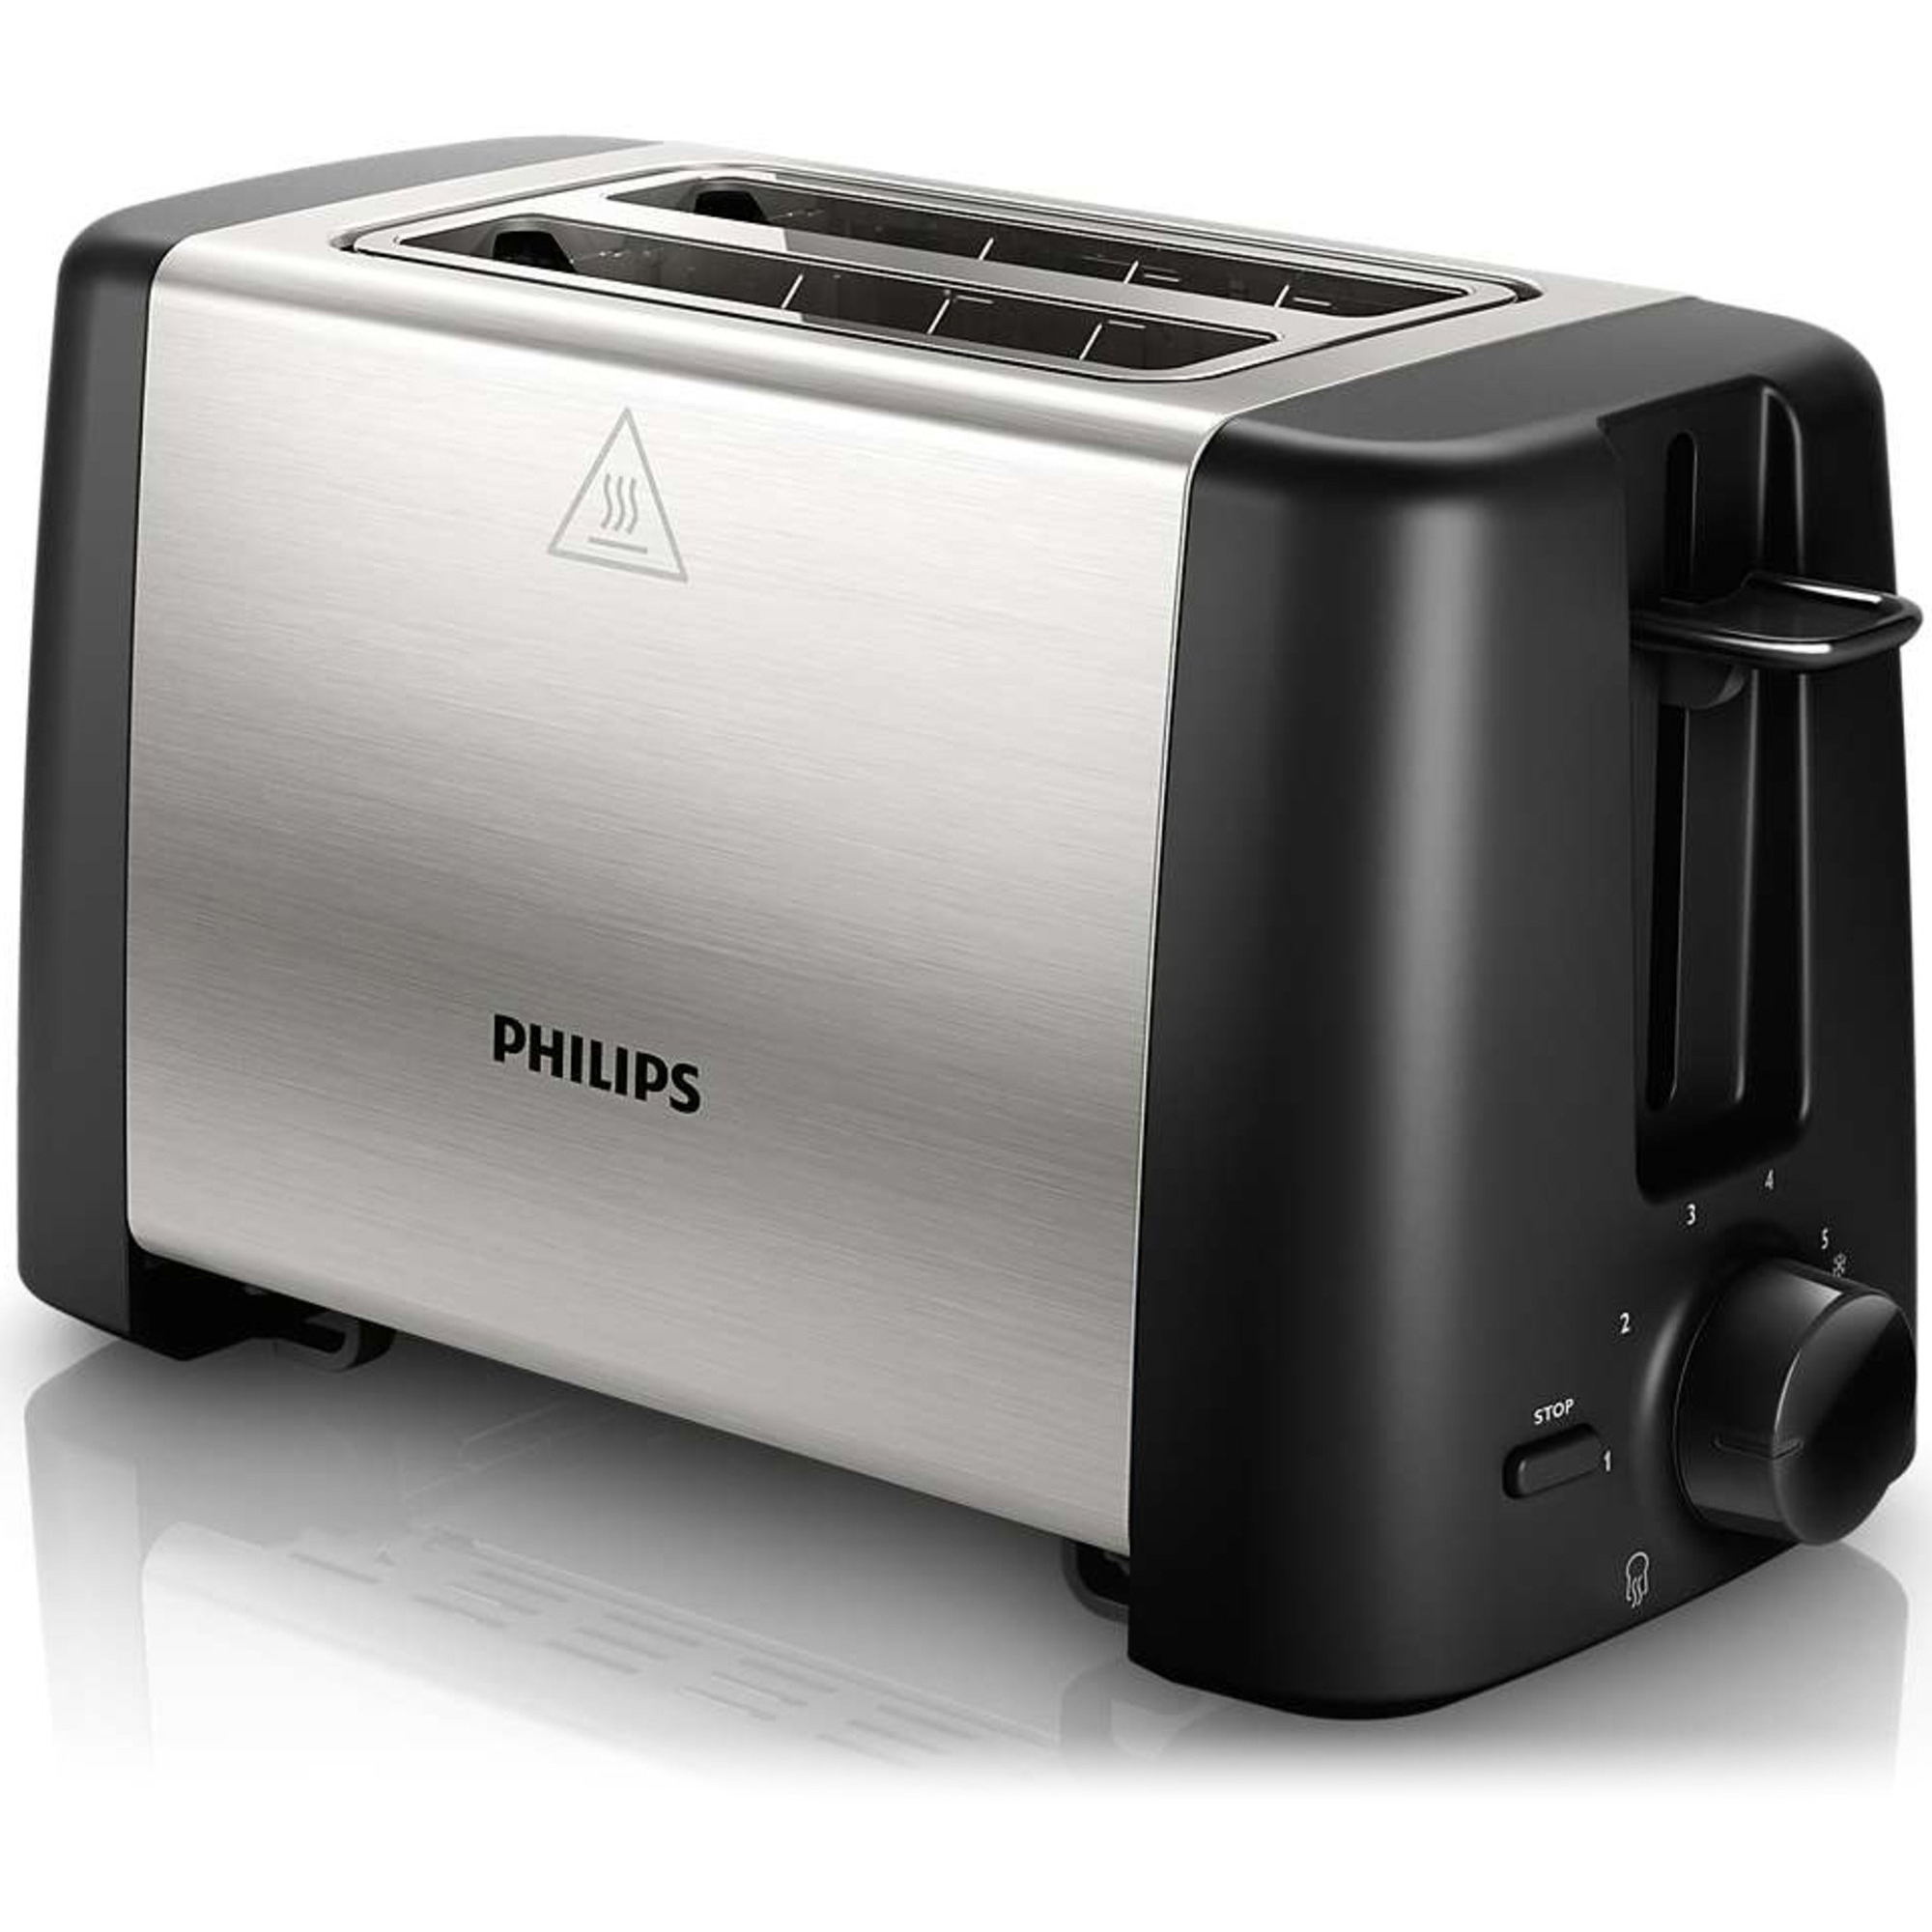 Philips Brødrister metal/sort HD4825/90